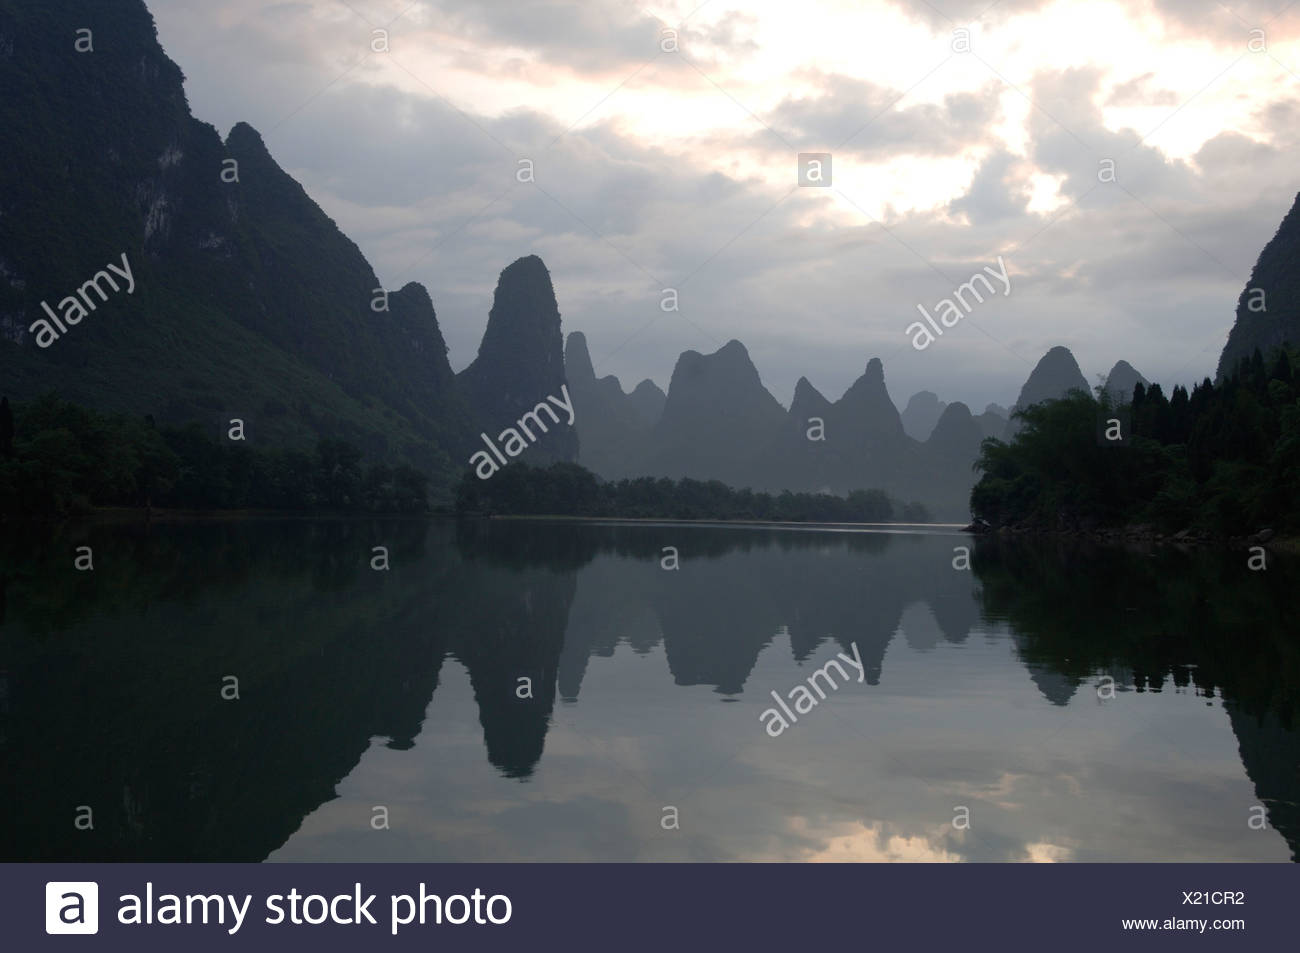 Scenic view of mountains and body of water at sunrise - Stock Image